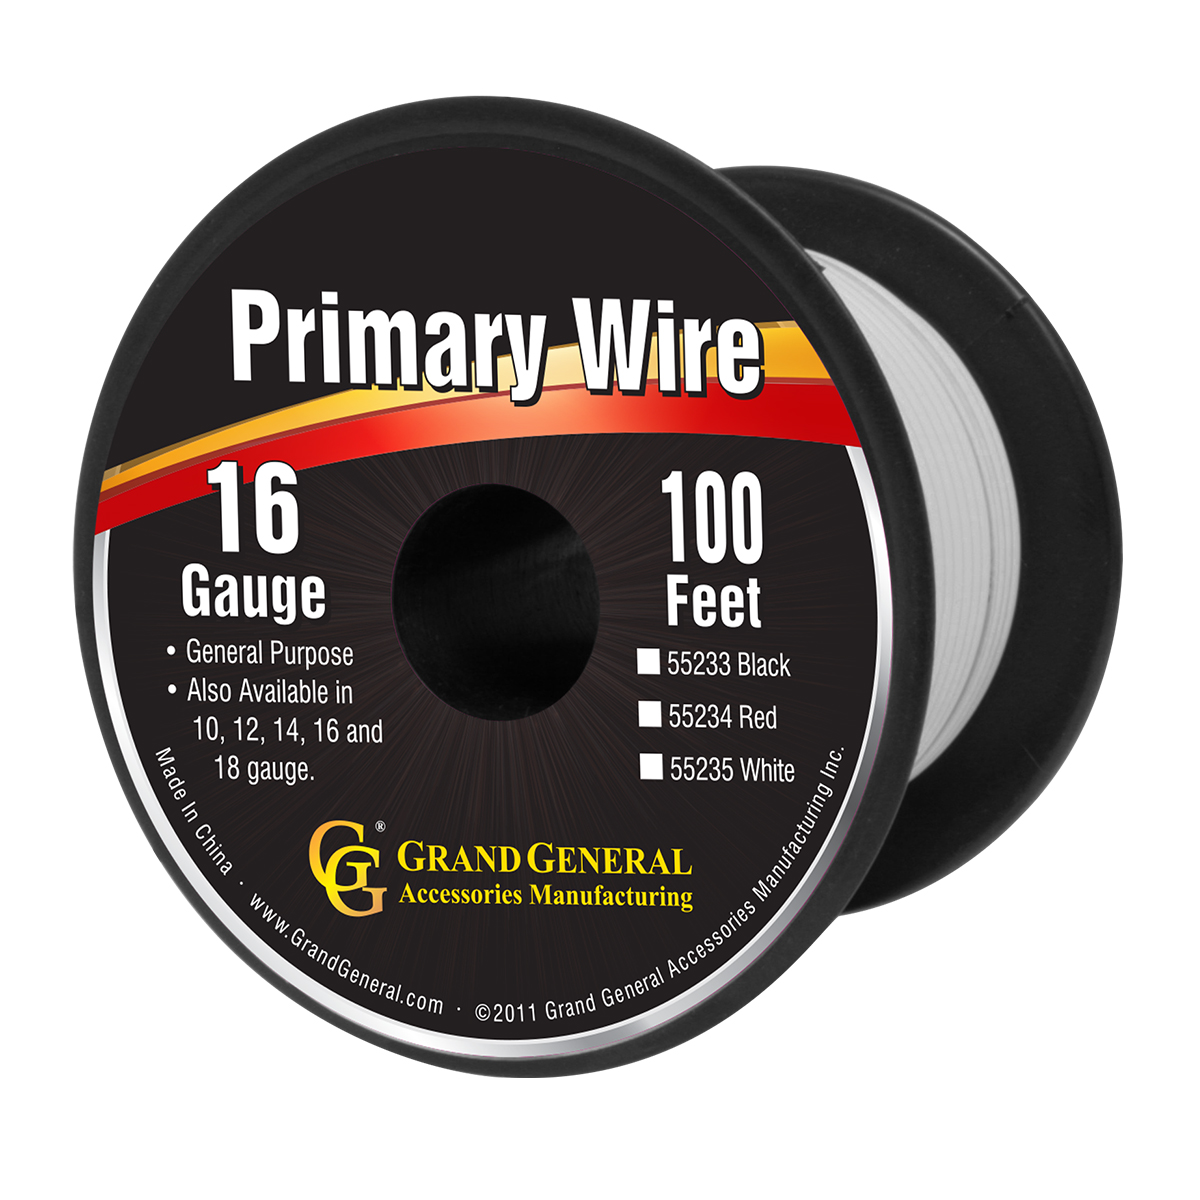 55235 Primary Wire in 16 Gauge, 100 Feet